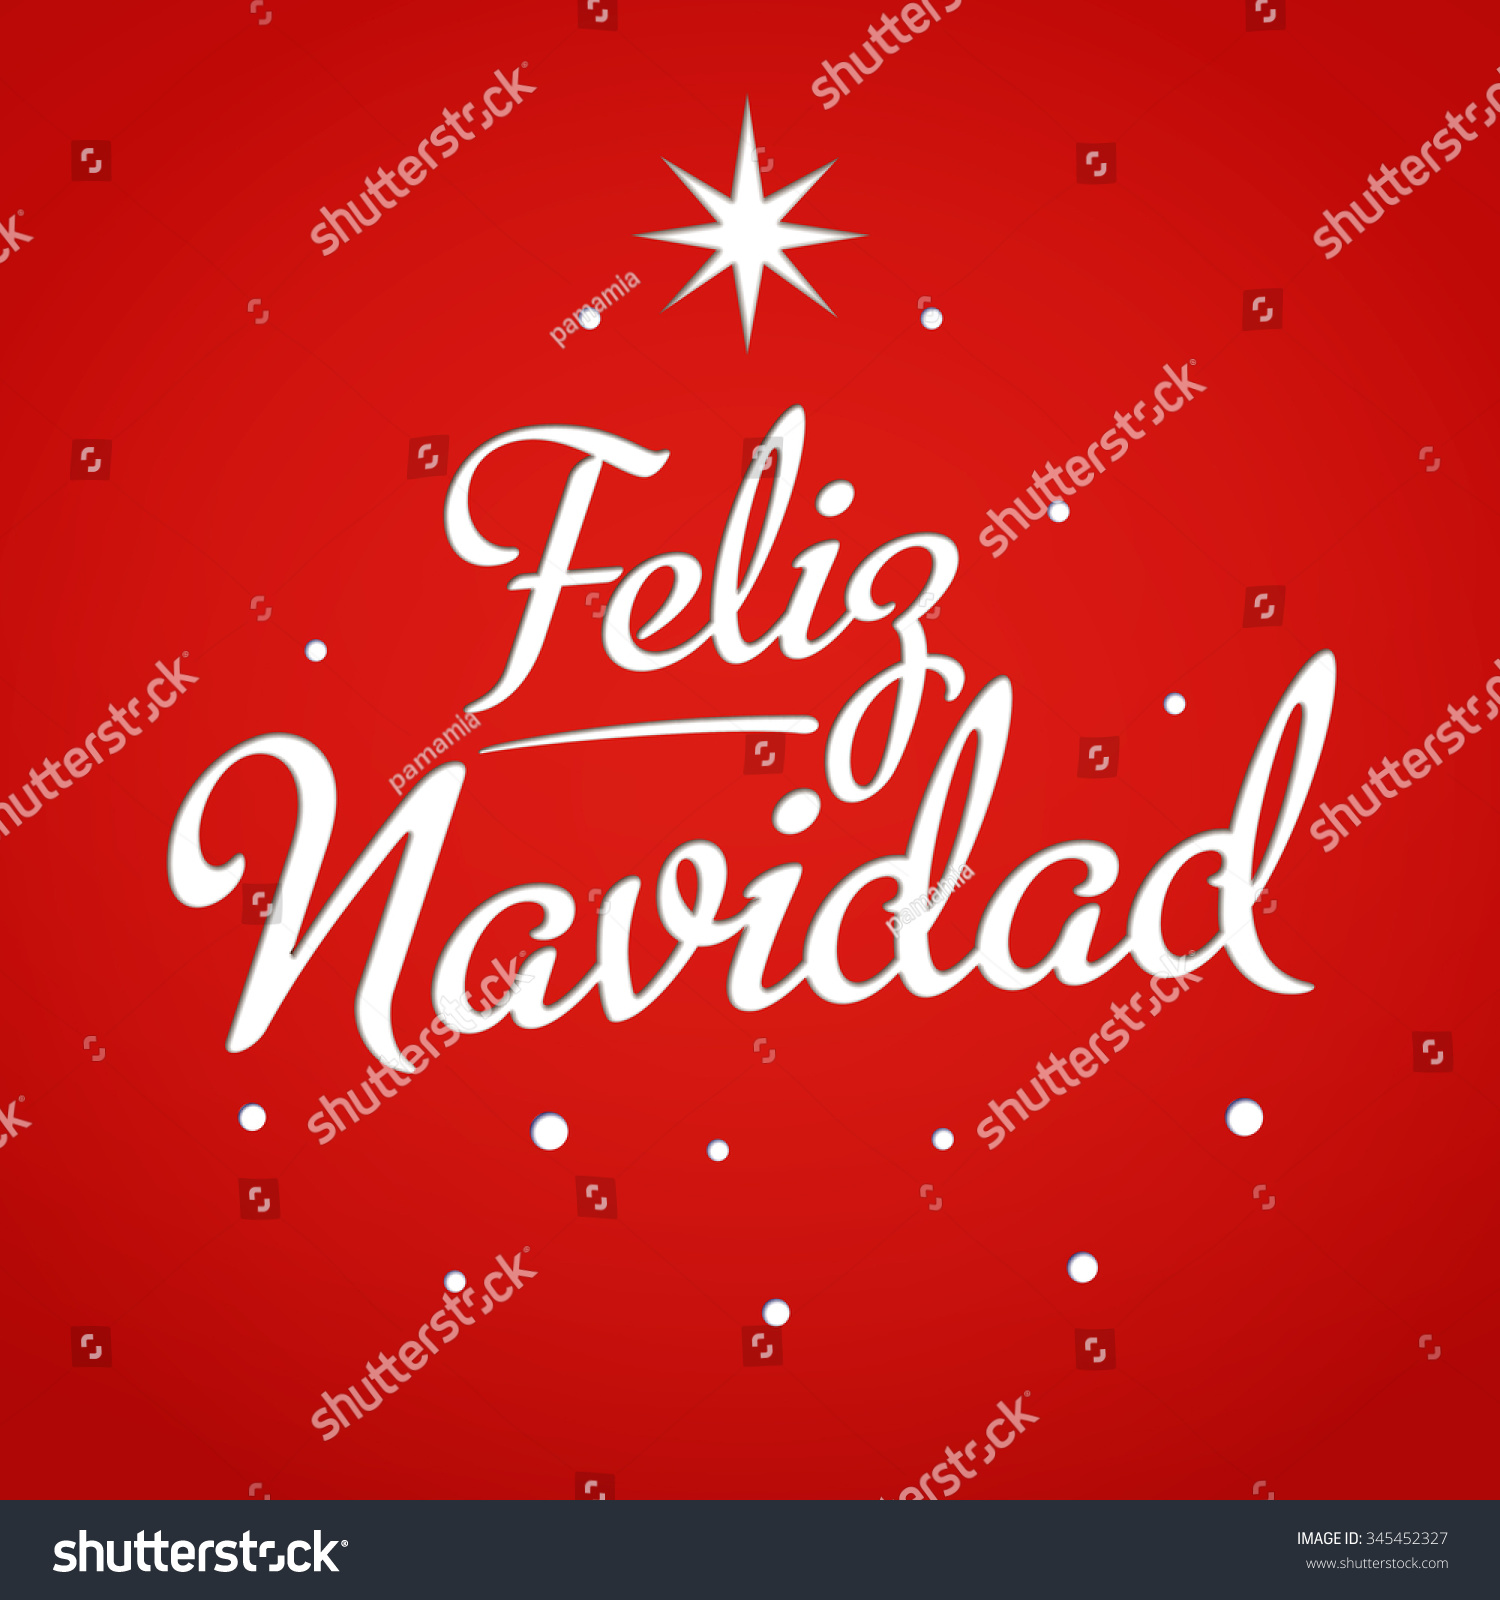 Merry Christmas Card Template Greetings Spanish Stock Vector